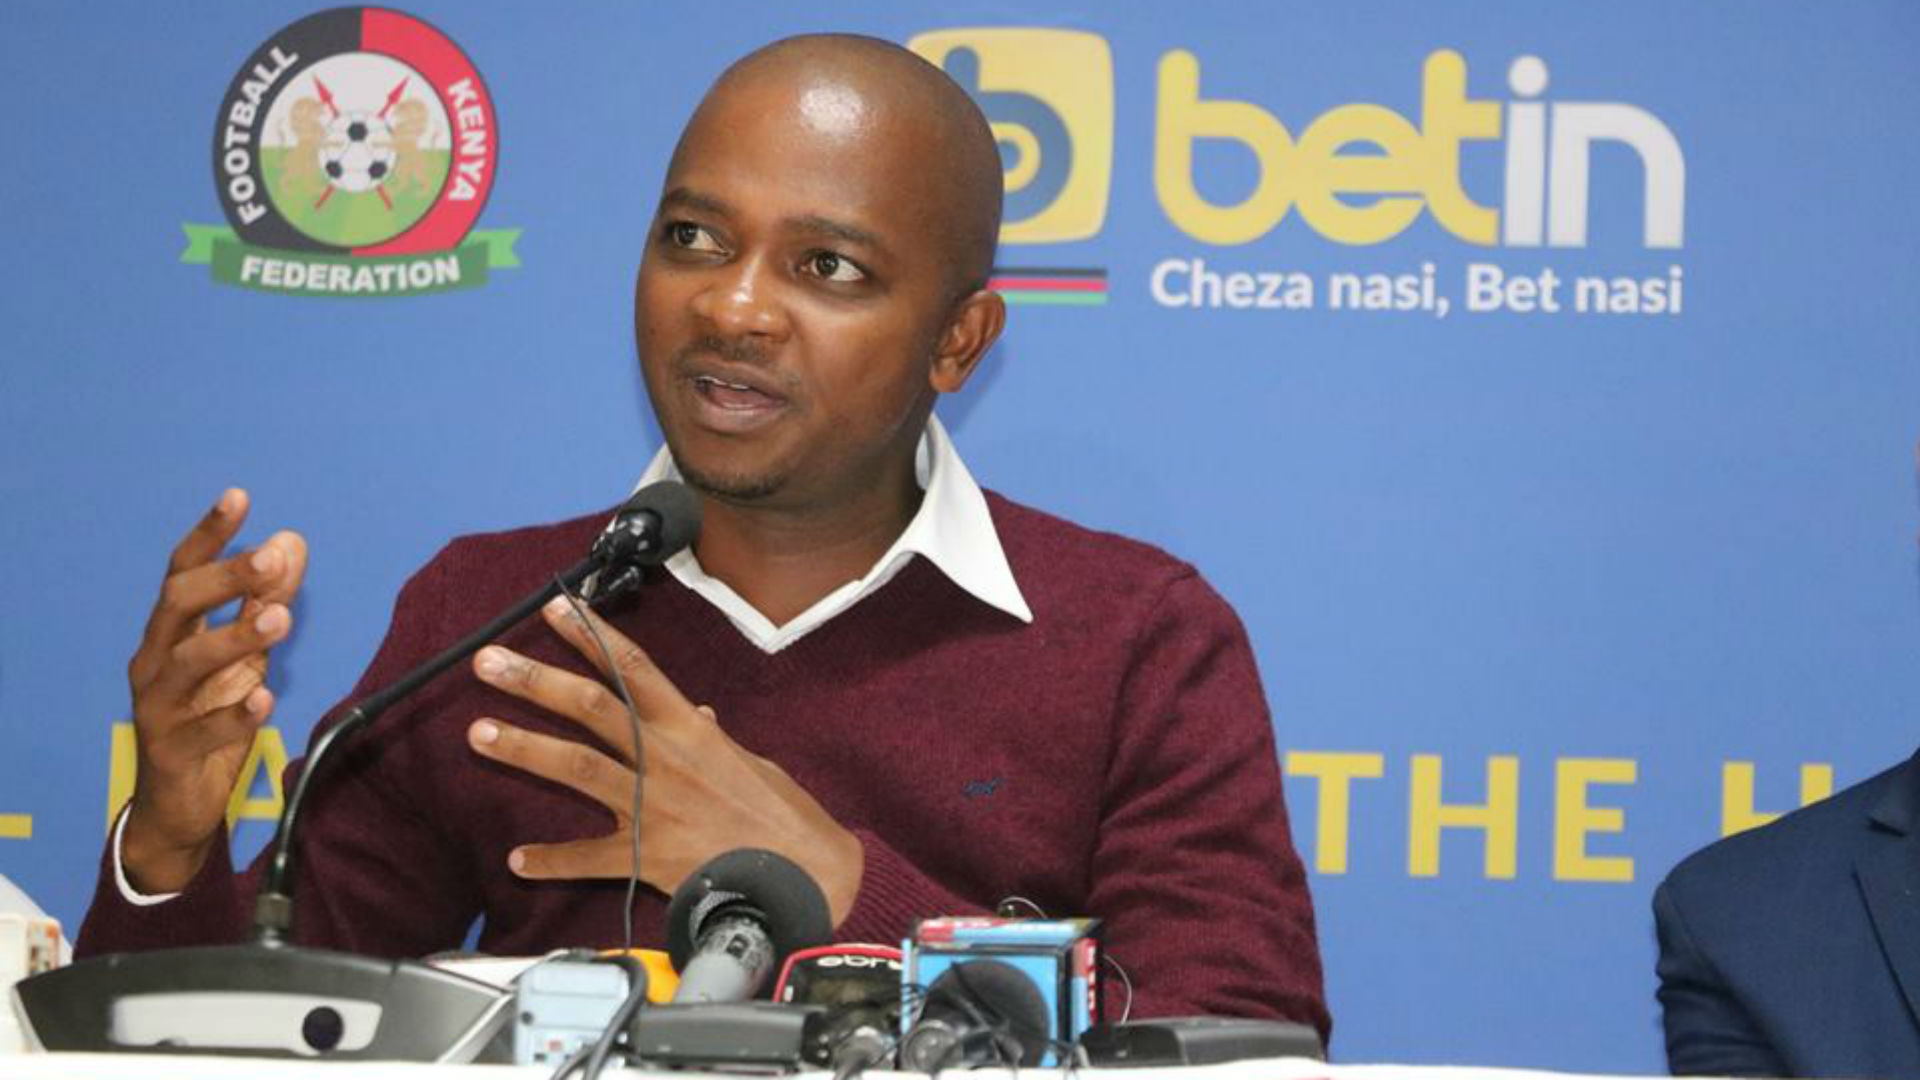 FKF to observe fairness in John Avire transfer saga investigation - Mwendwa